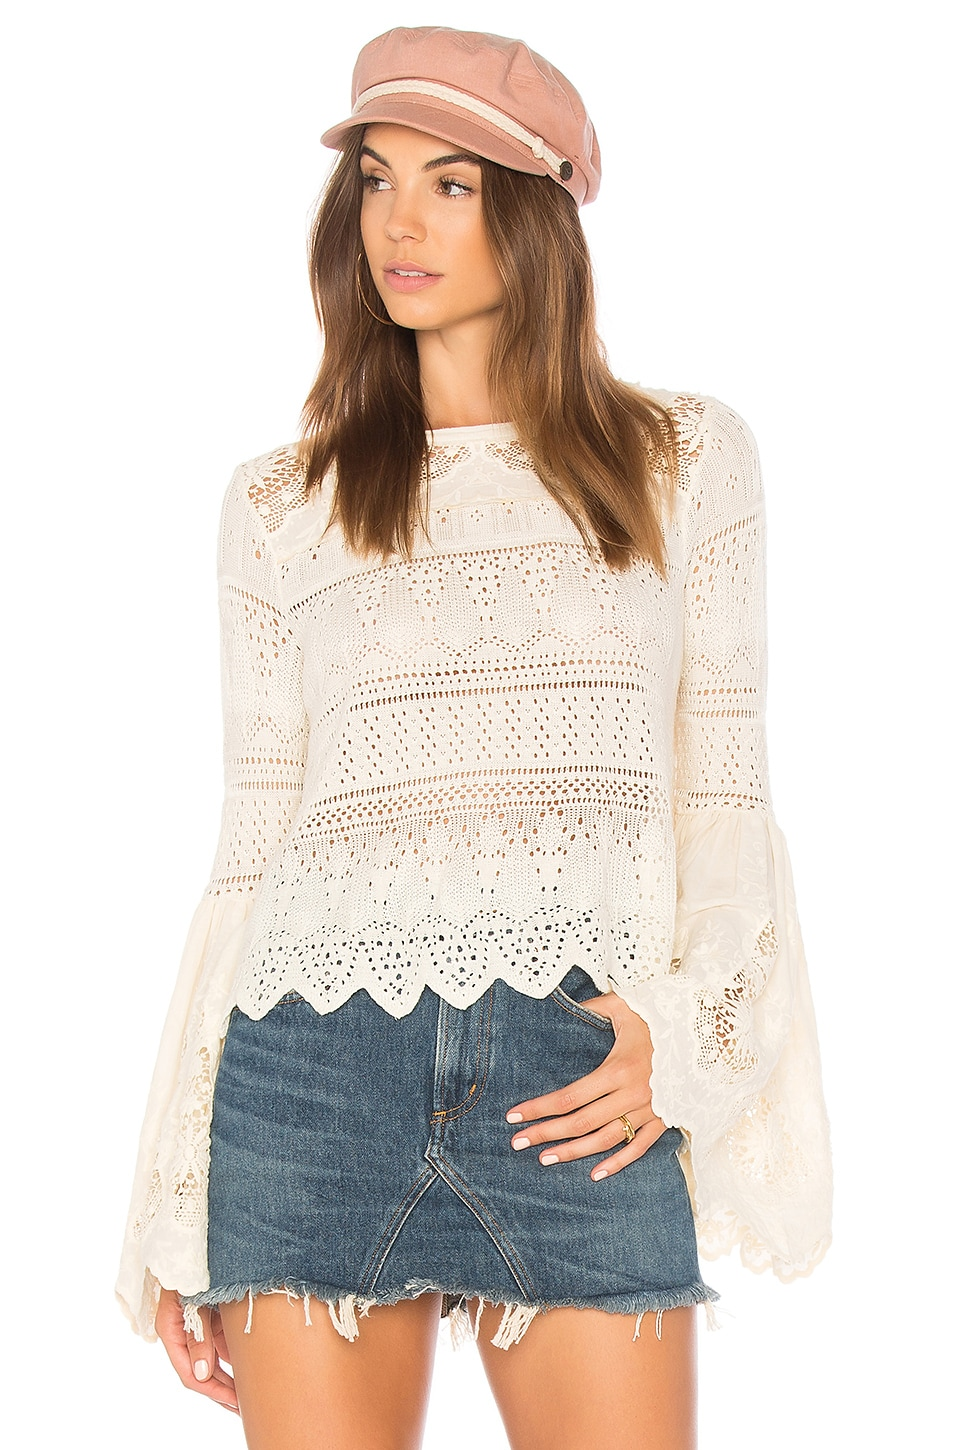 Free People Once Upon a Time Sweater in Ivory